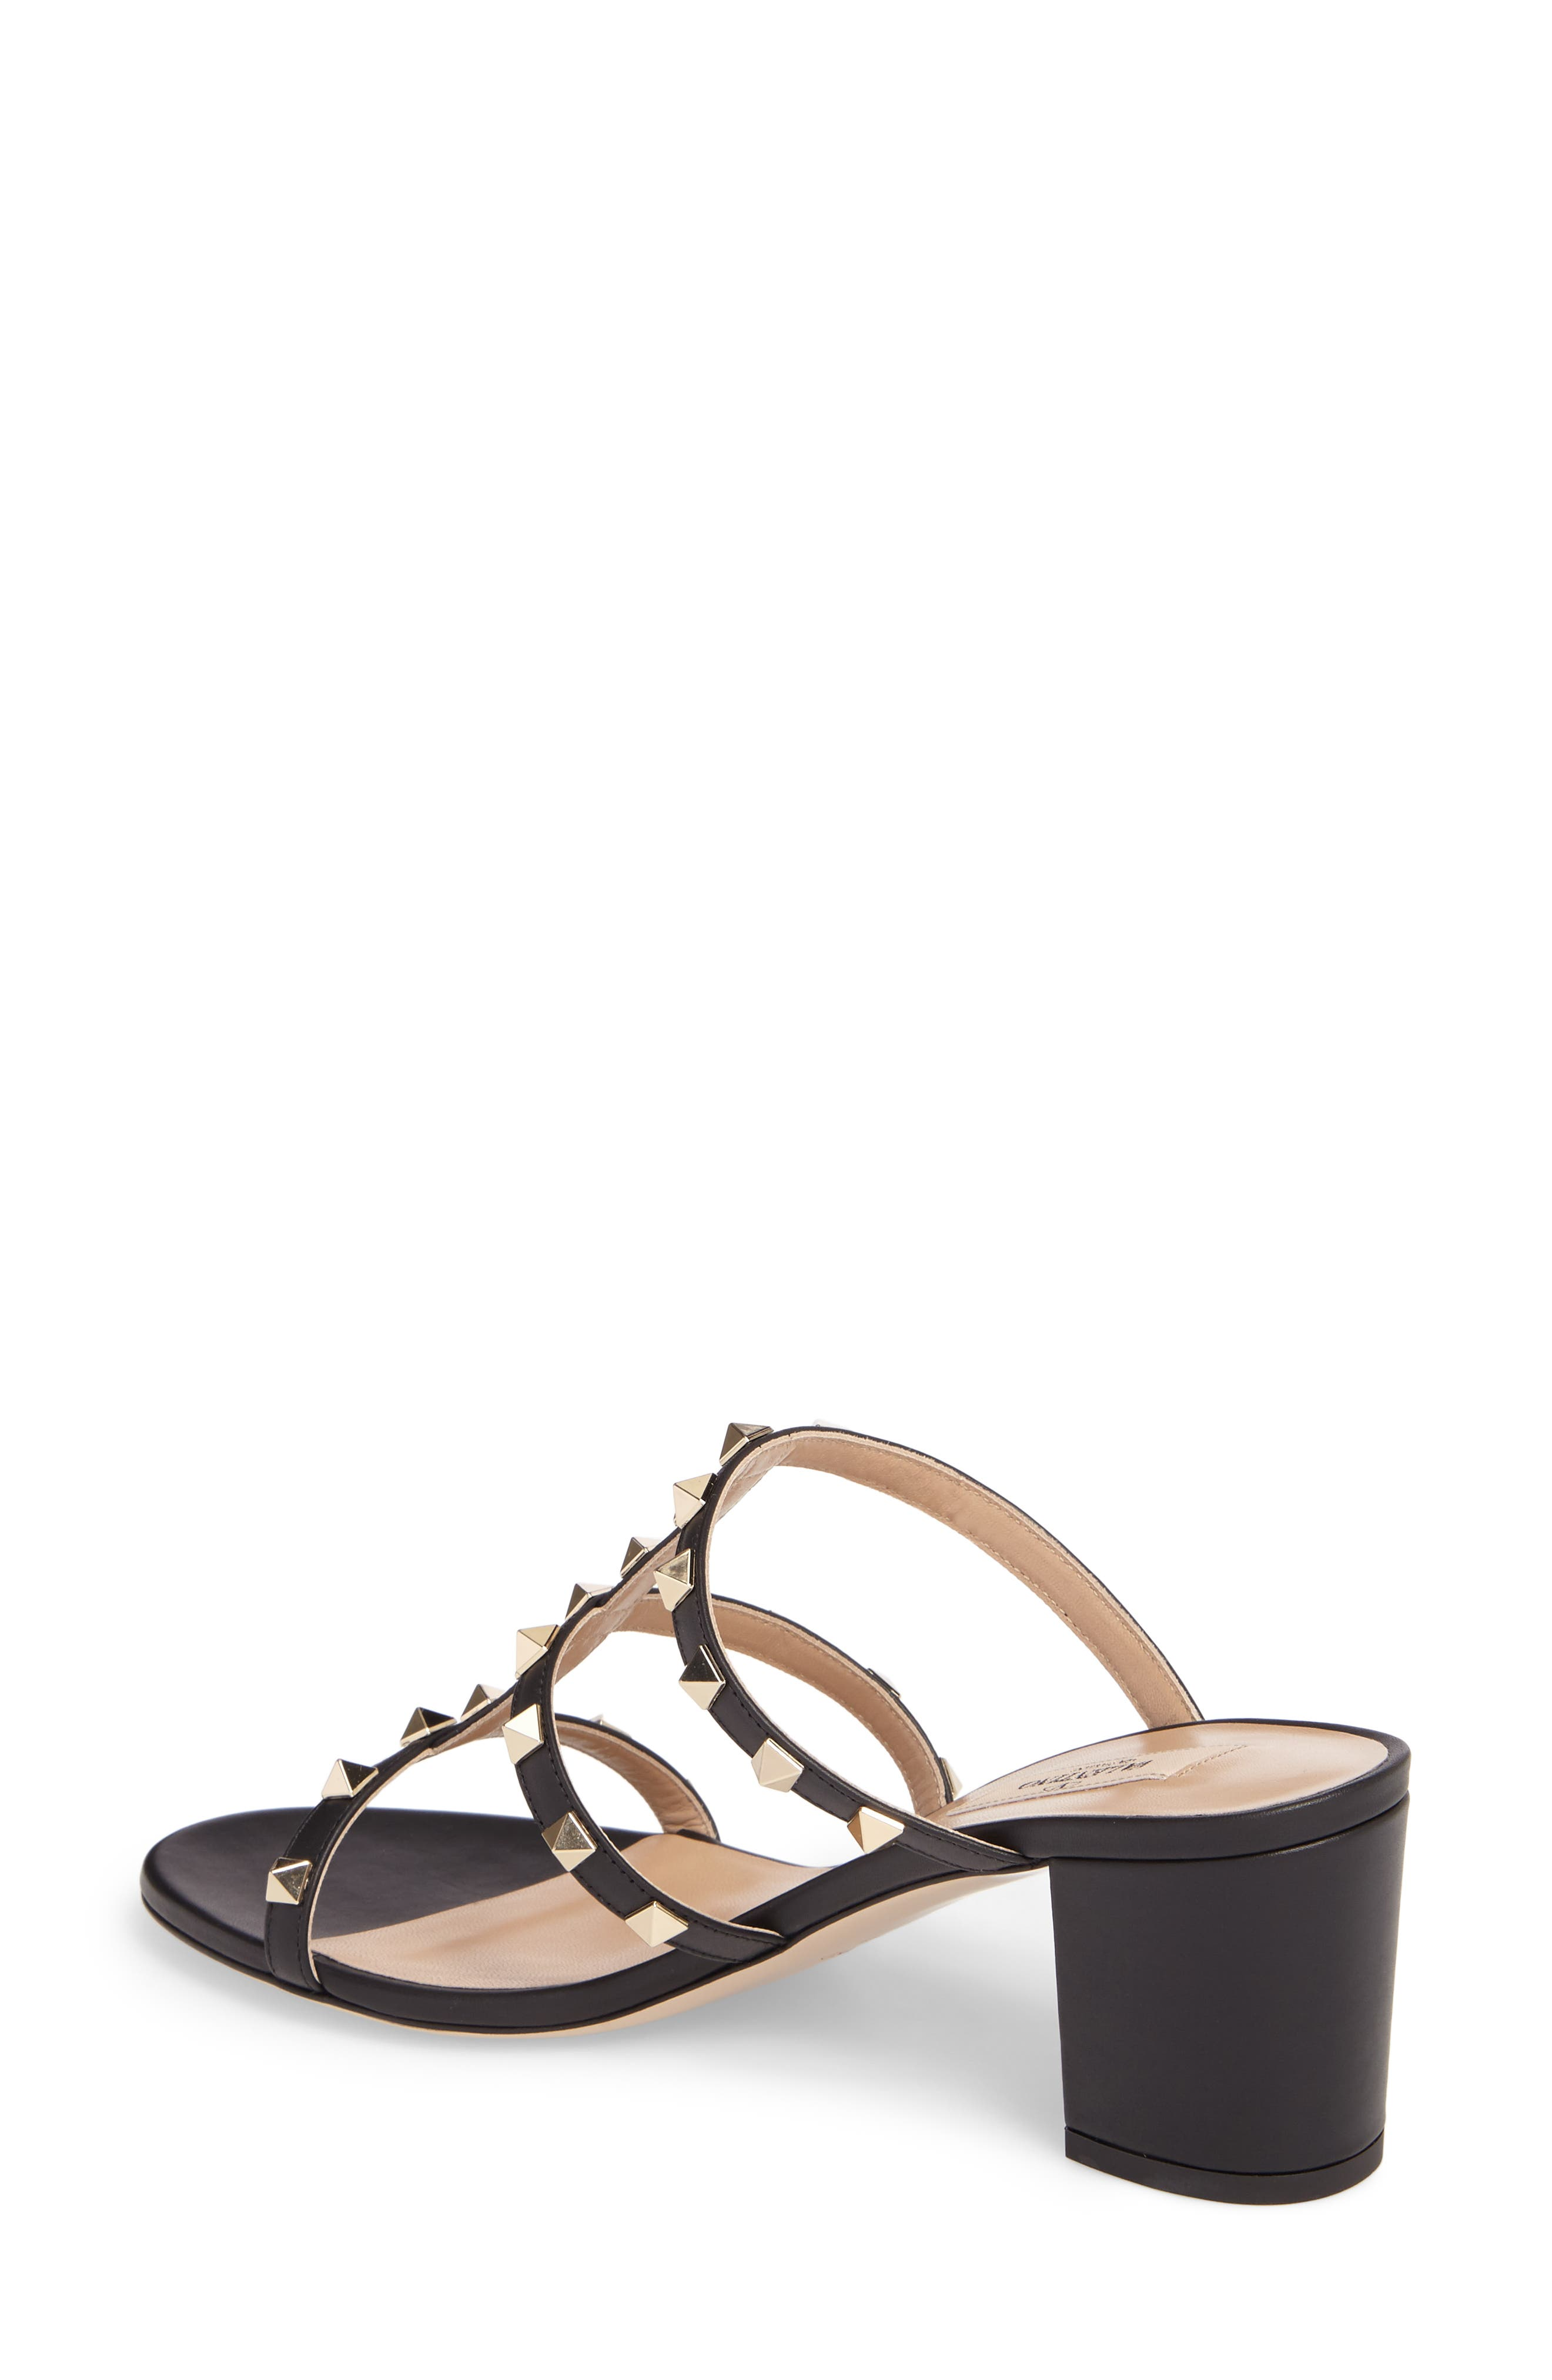 Rockstud Slide Sandal,                             Alternate thumbnail 2, color,                             002